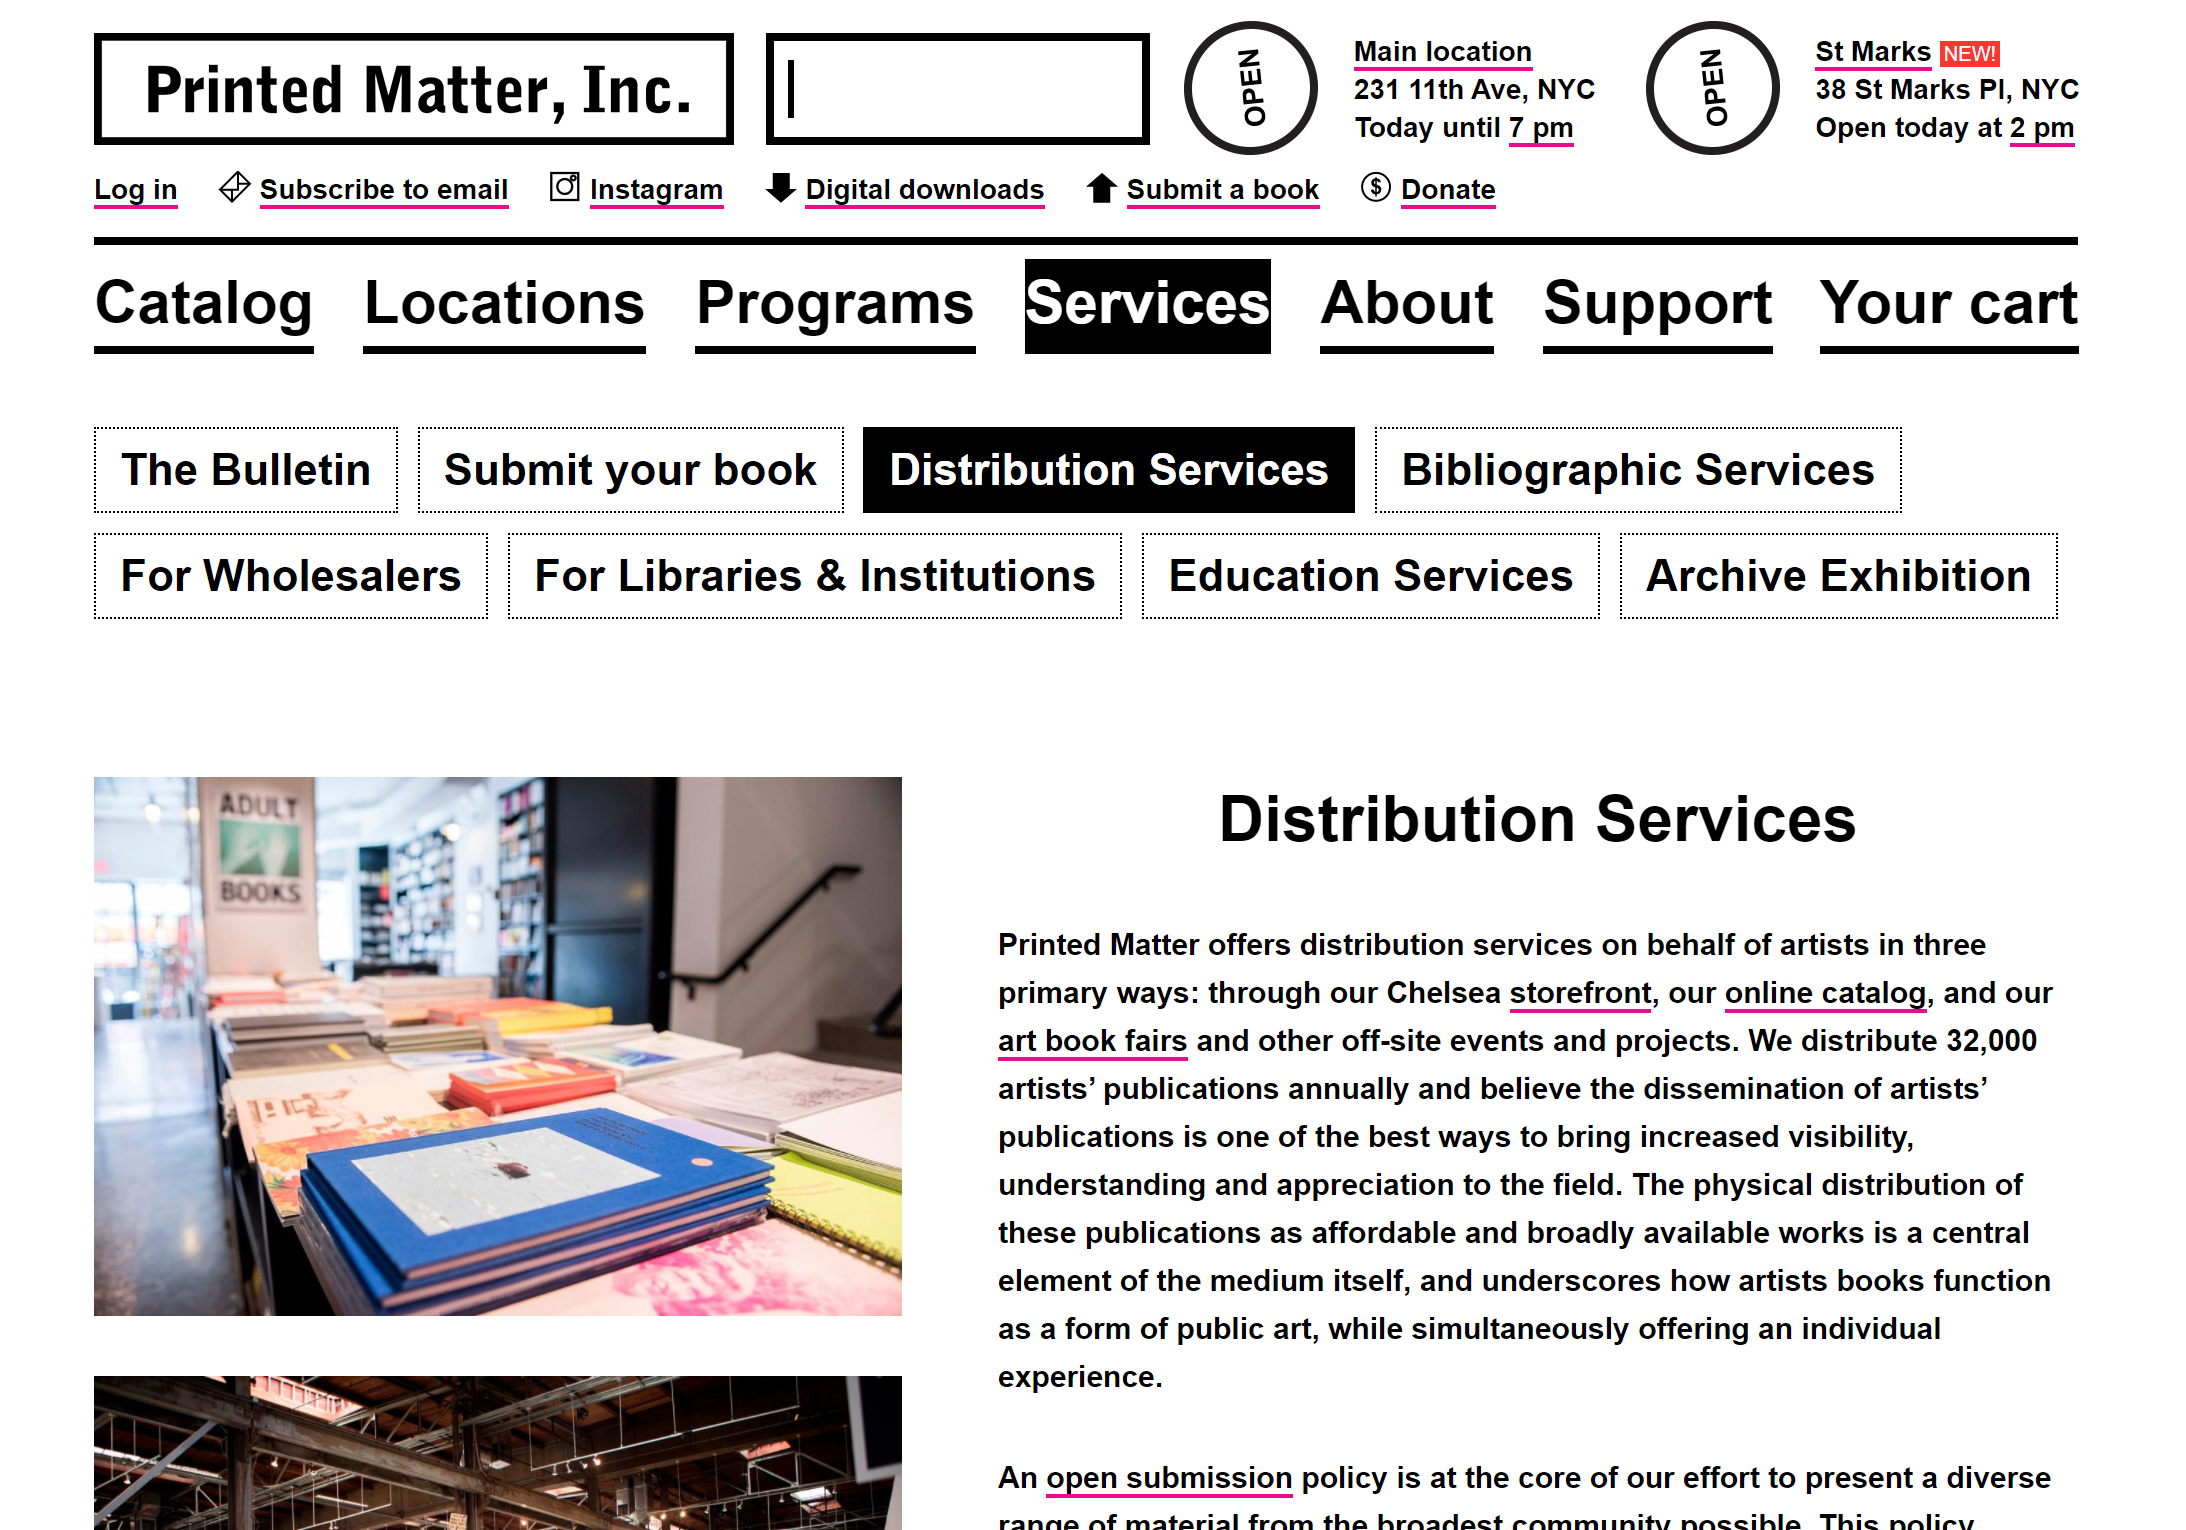 Printed Matter's distribution services page